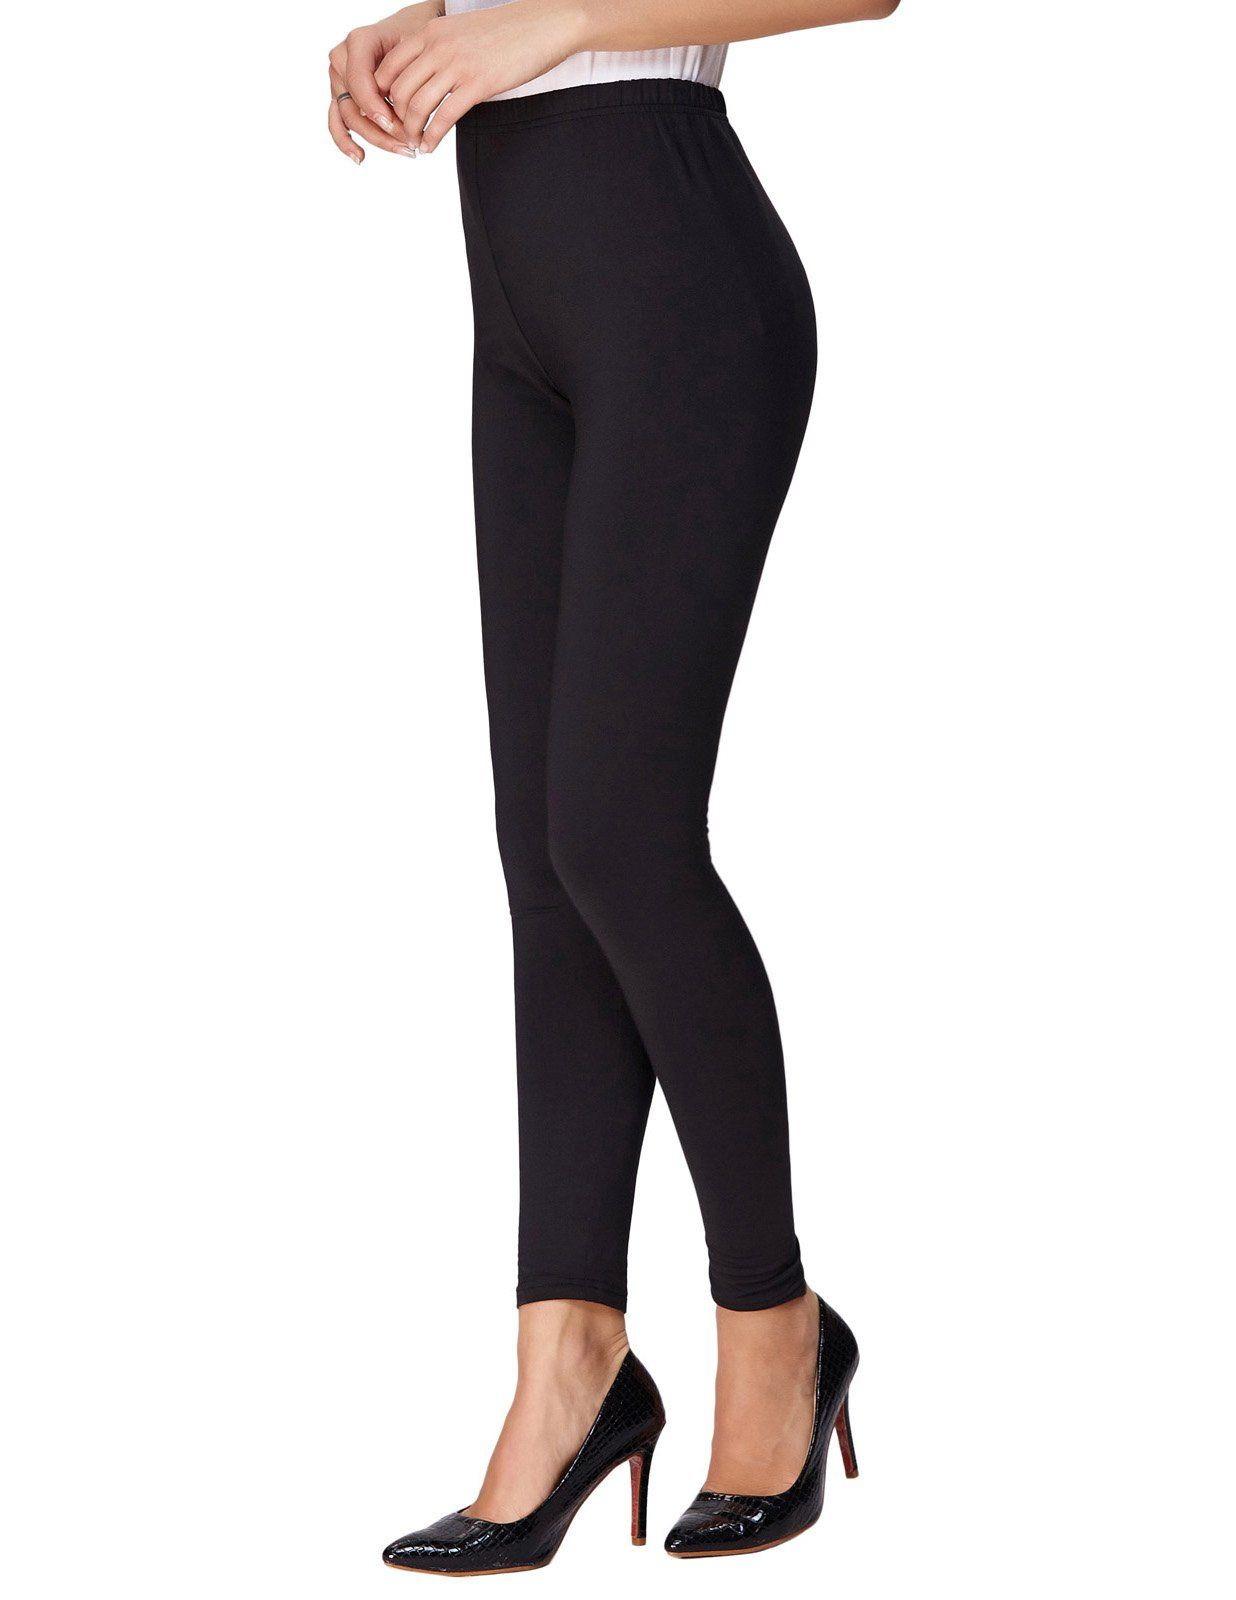 64e71144af2 Women Fleece Lined Leggings High Waist Premium Ultra Soft Full Length Black  S MKK8271 -- Check this awesome product by going to the link at the image.